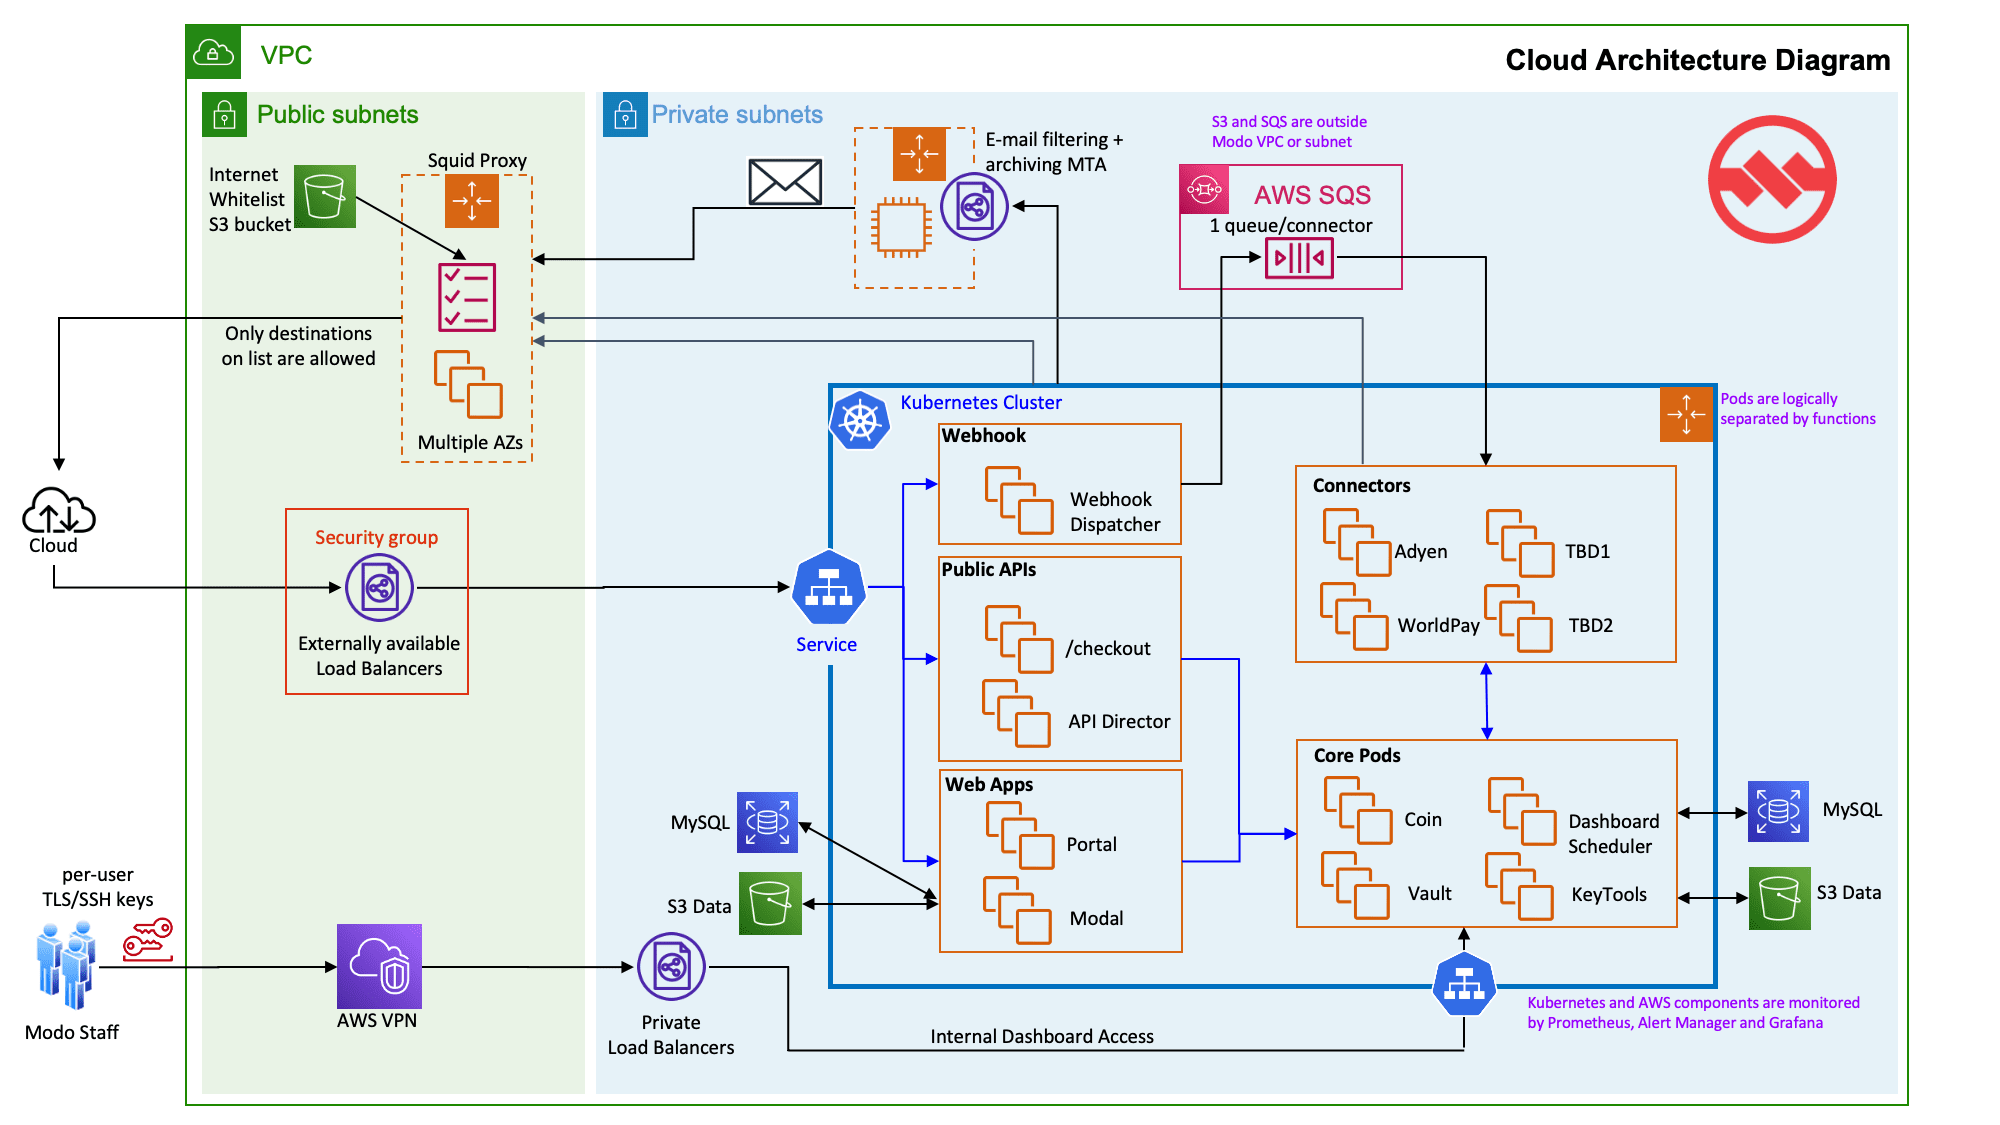 Modo Cloud Architecture Diagram